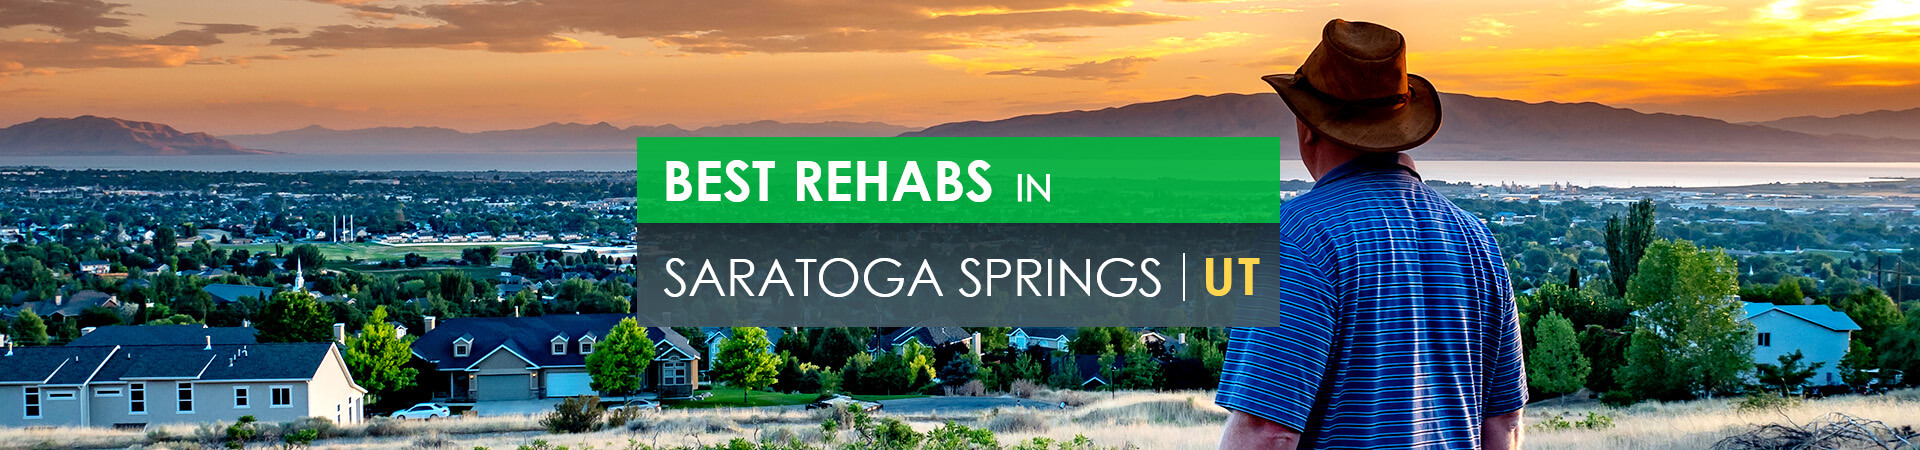 Best rehabs in Saratoga Springs, UT